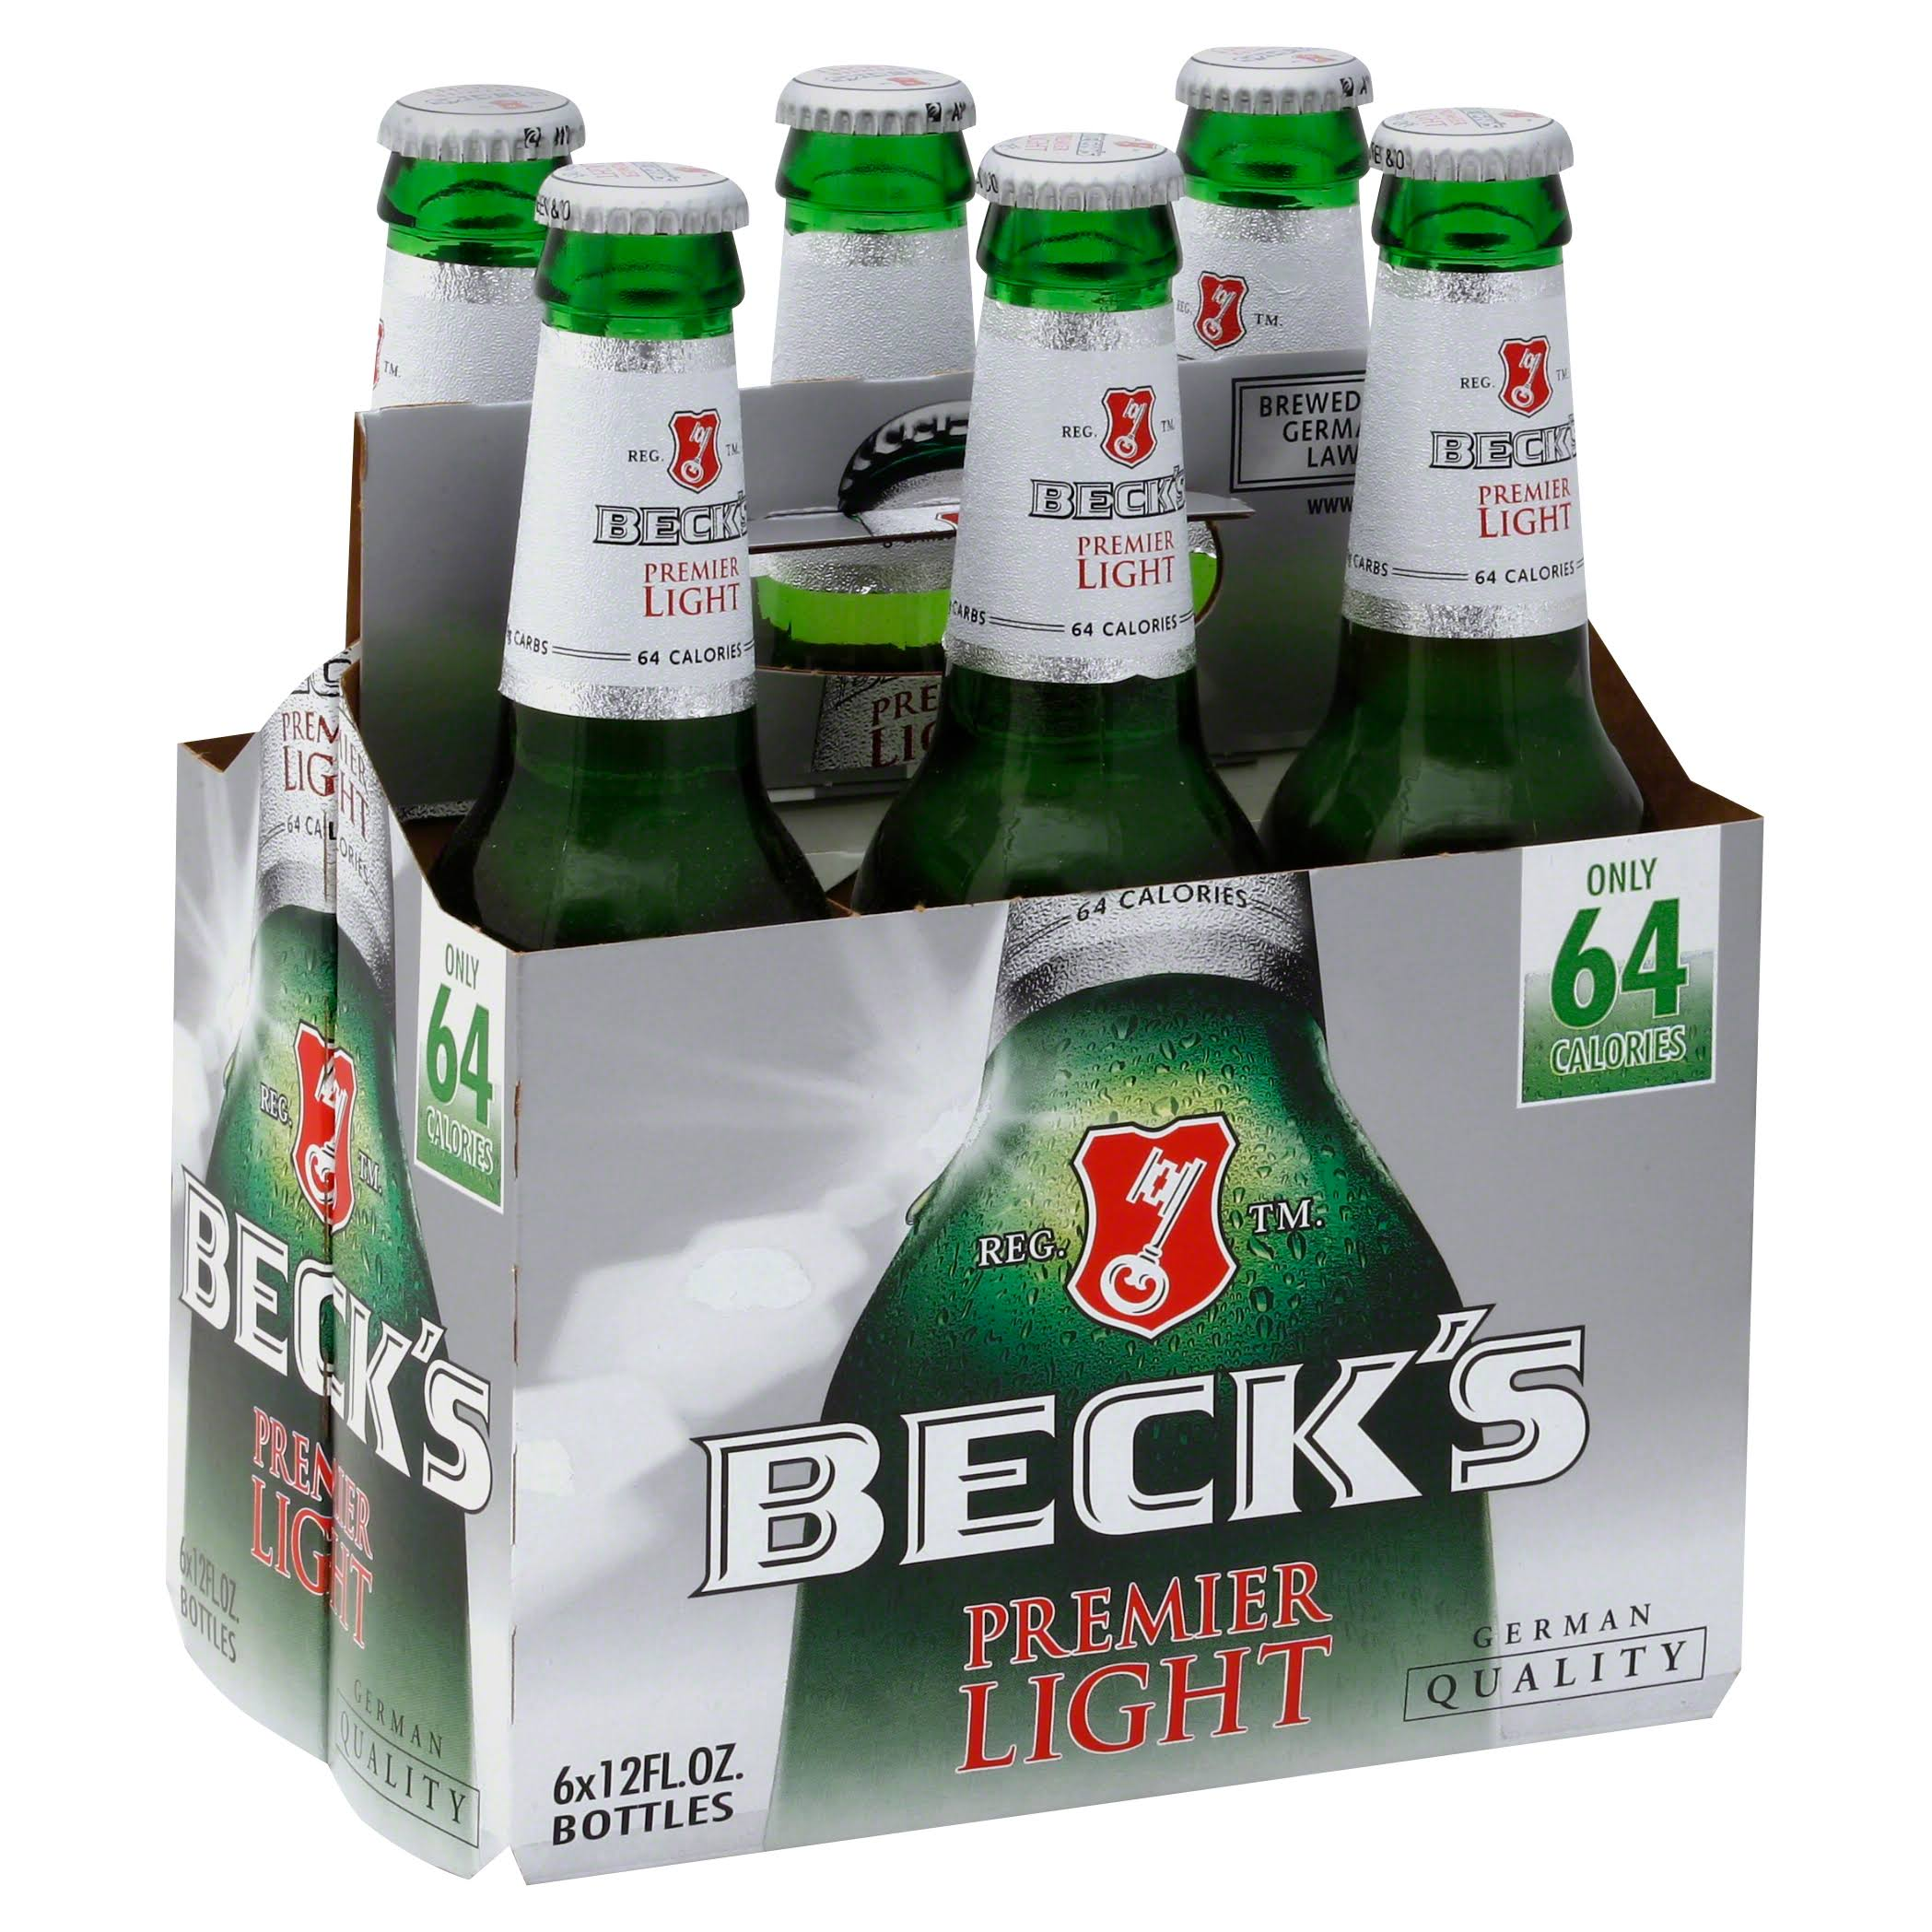 Beck's Premier Light Beer - 6 x 12 oz Pack